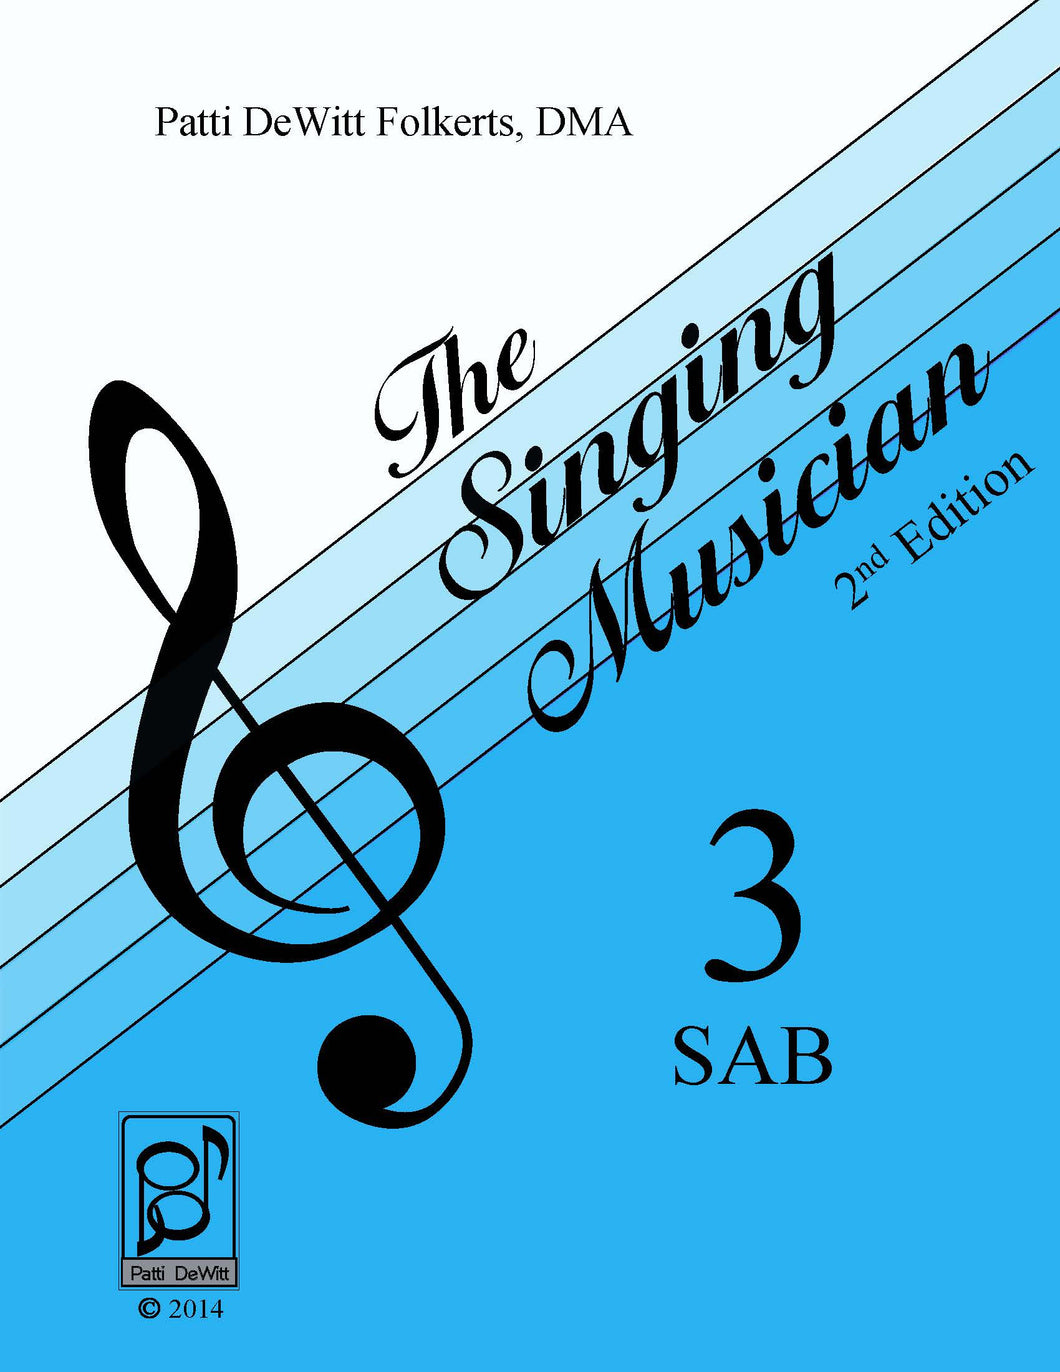 The Singing Musician—Level 3: The Skillful Singer SAB Teachers Edition